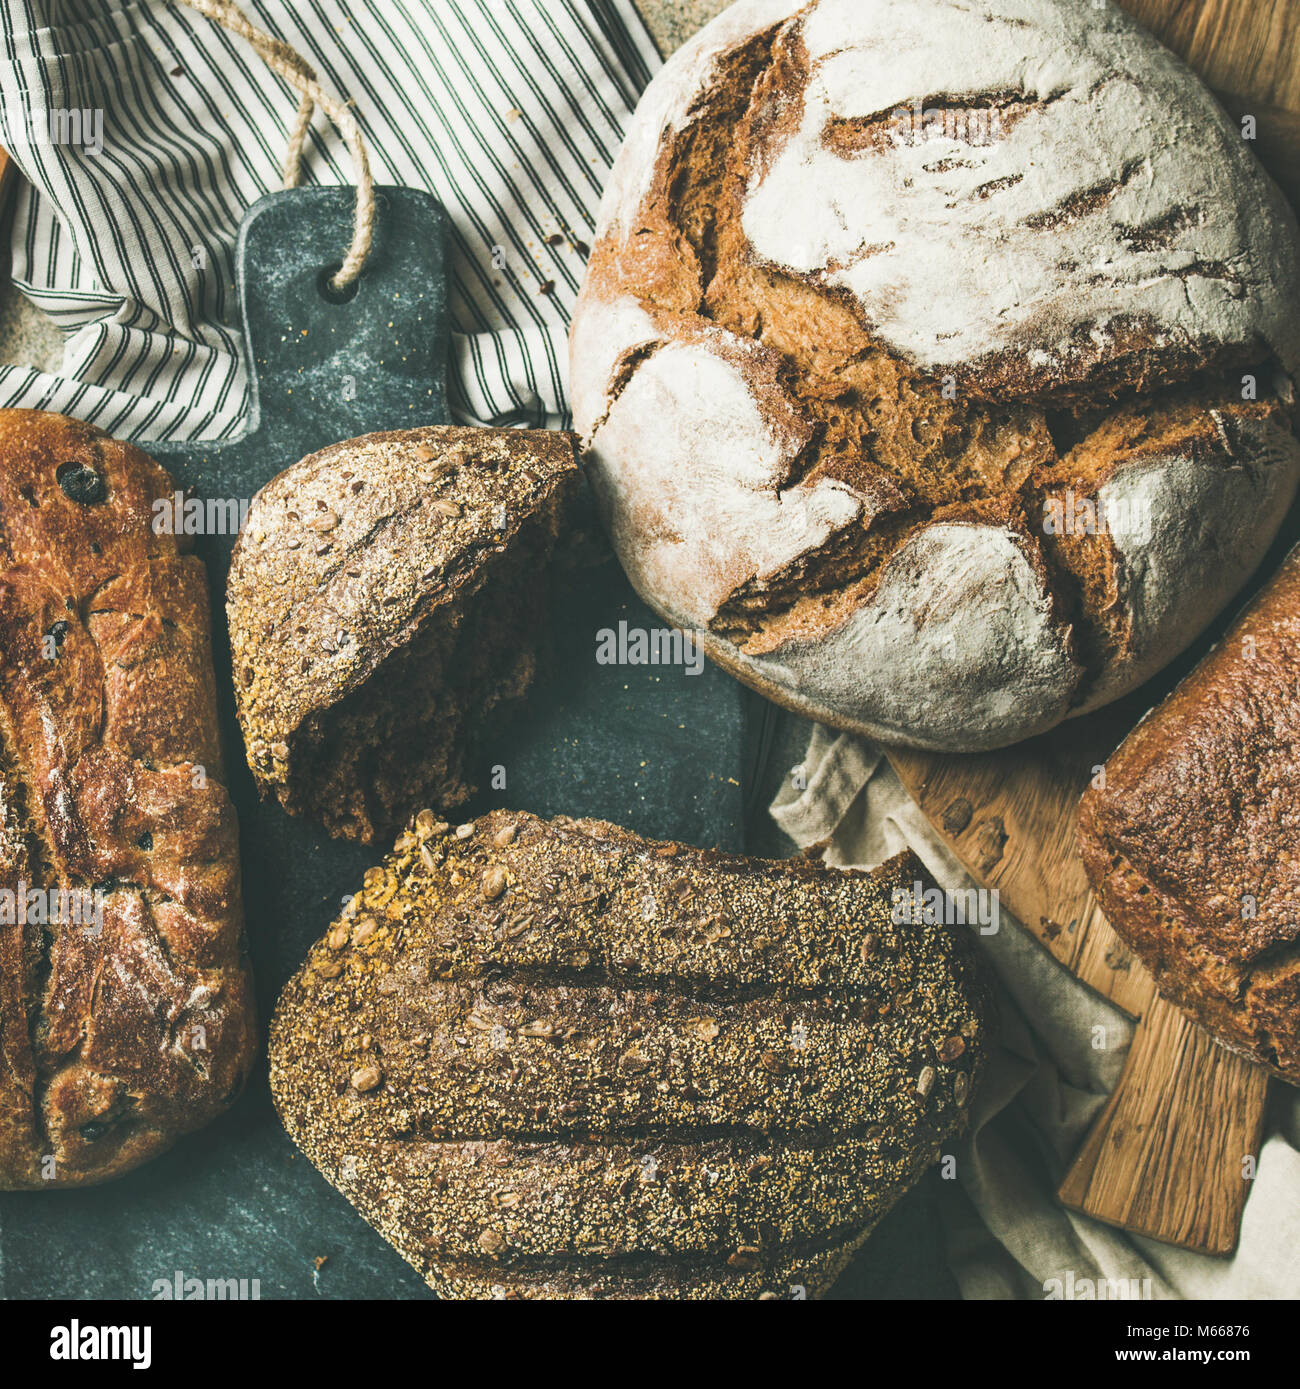 Flat-lay of various bread loaves on grey background, square crop Stock Photo